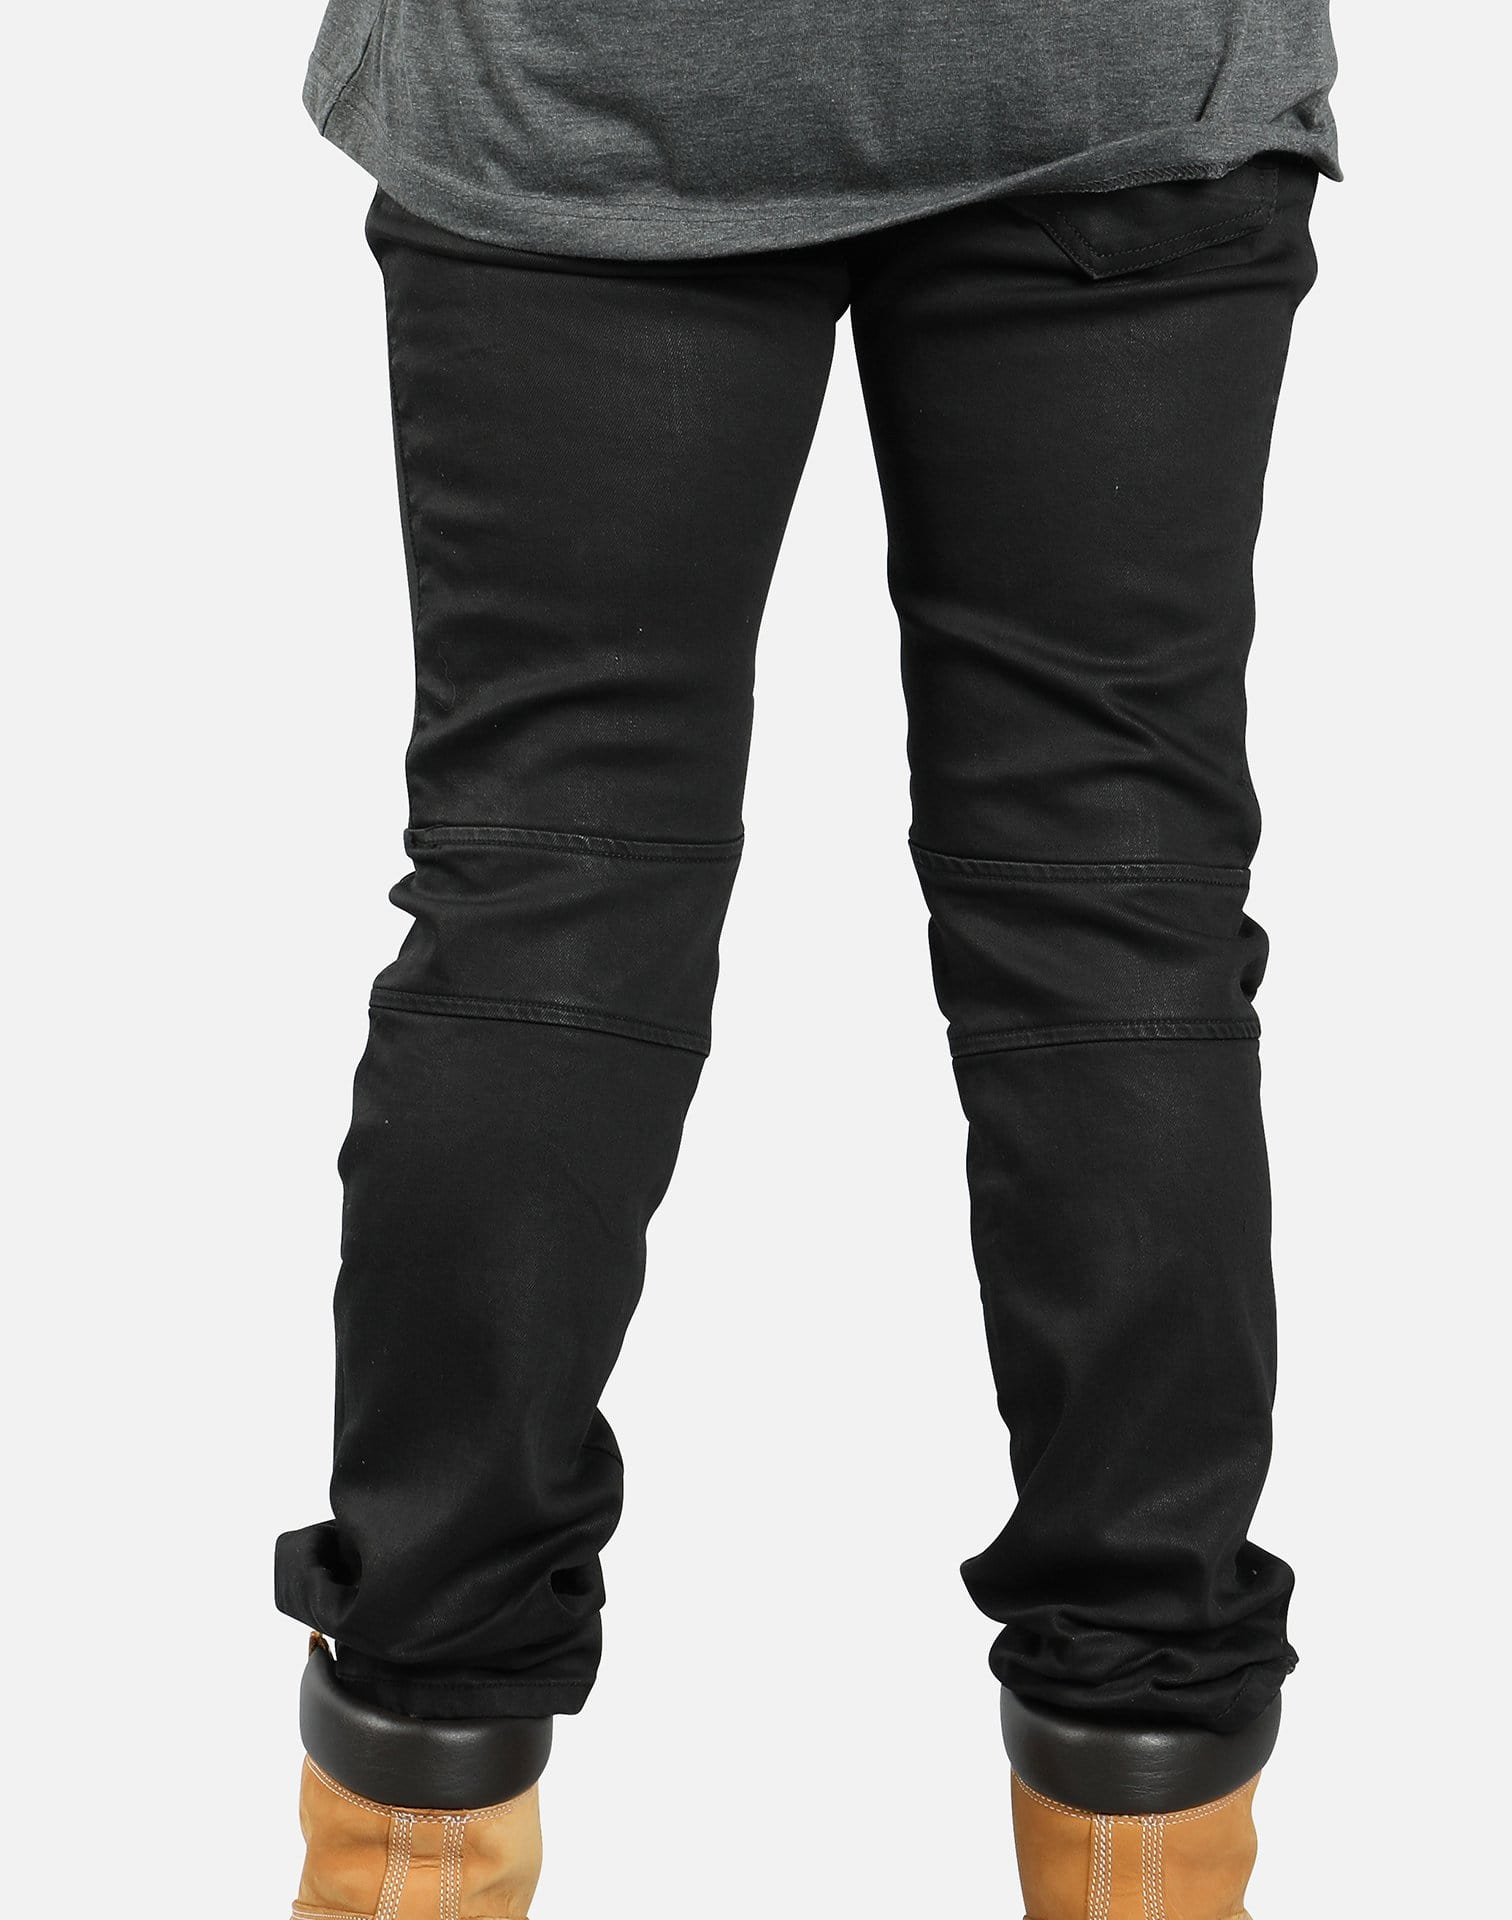 ENGINEERED KNEE JEANS